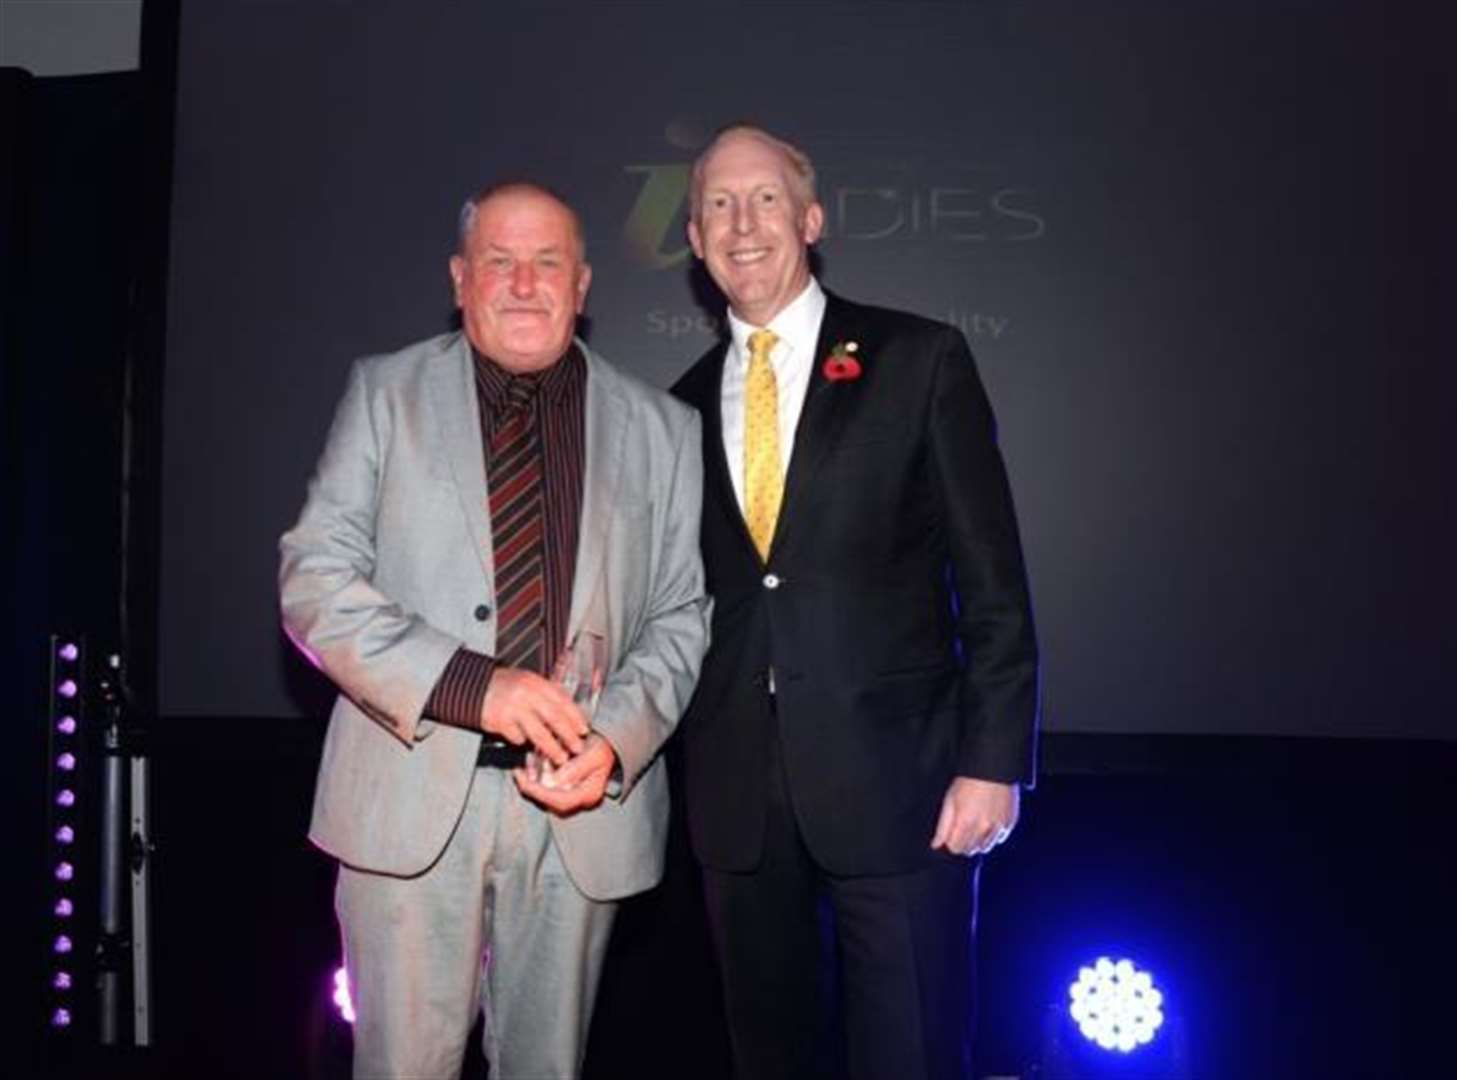 Indies awards: 69-year-old football referee King Kenny is Sports Personality winner